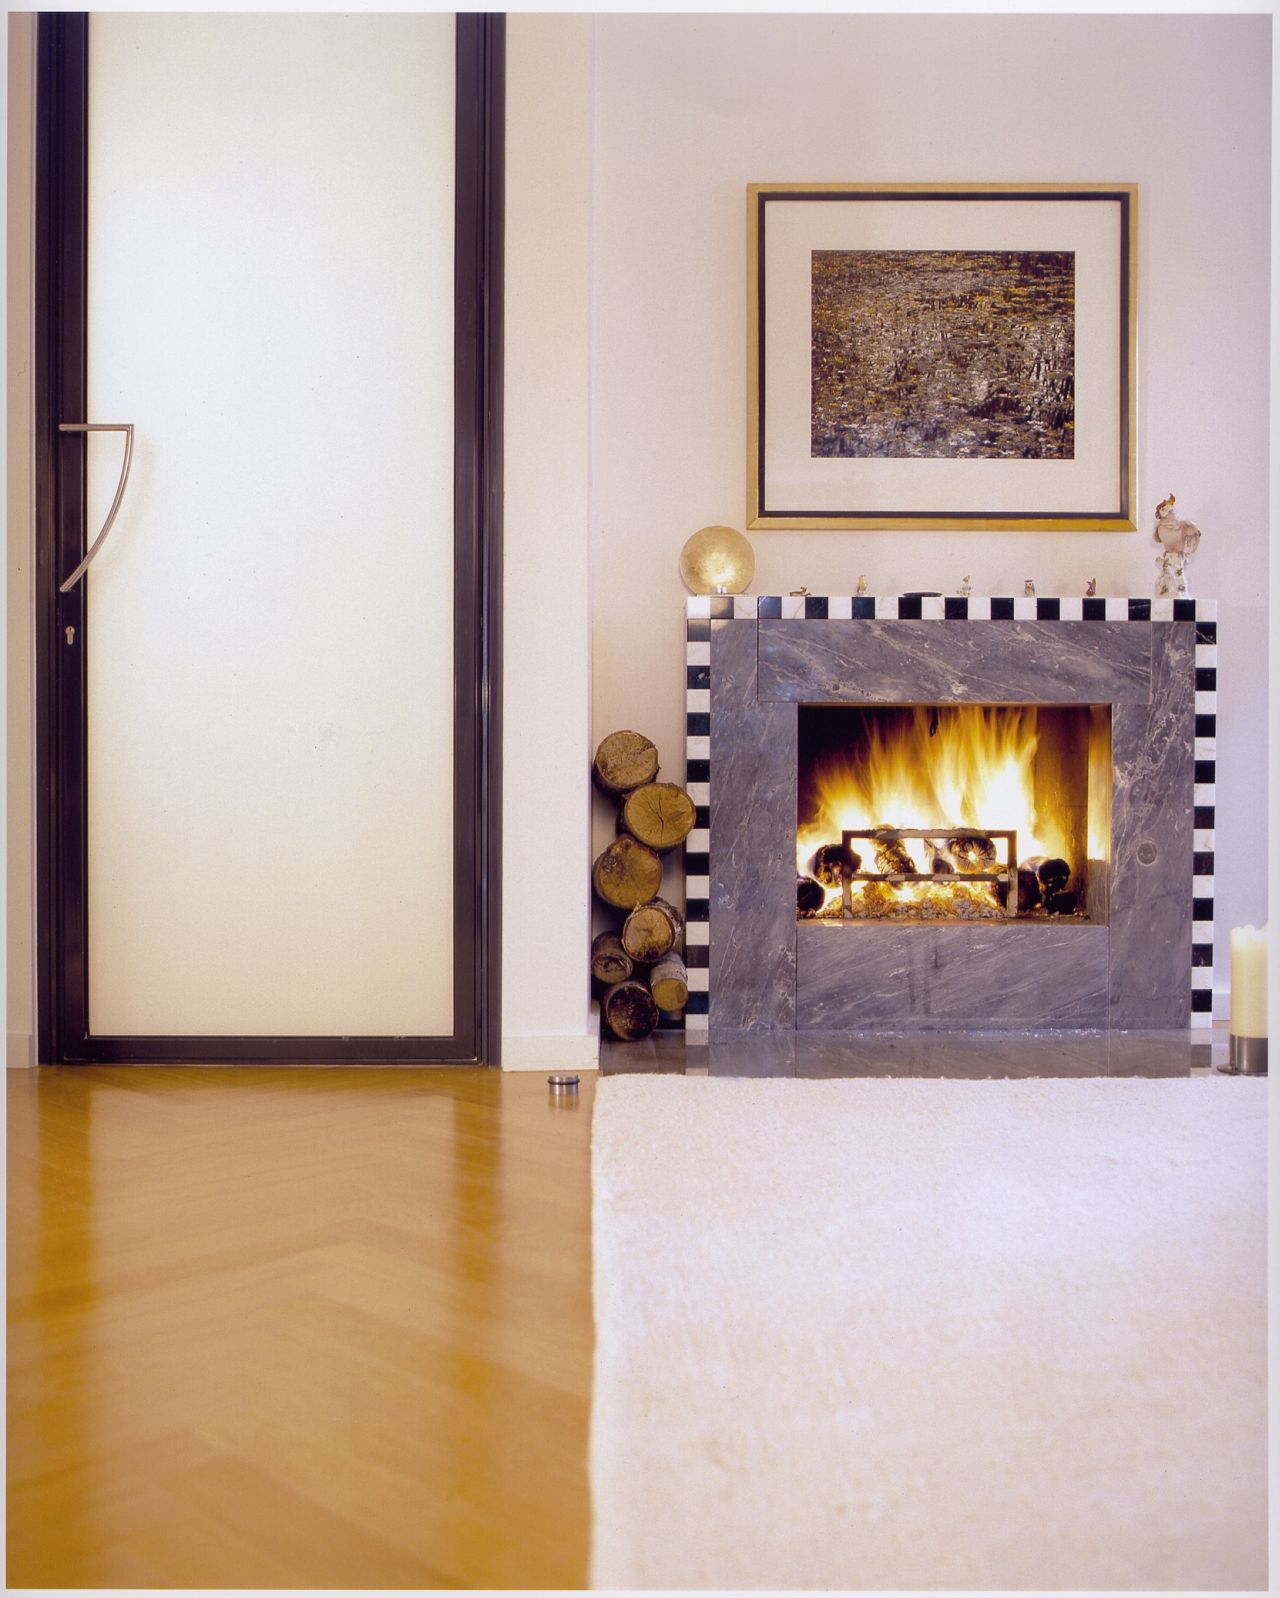 In the living room, fireplace with a black-and-white geometric pattern. Dopo-domani, Berlin